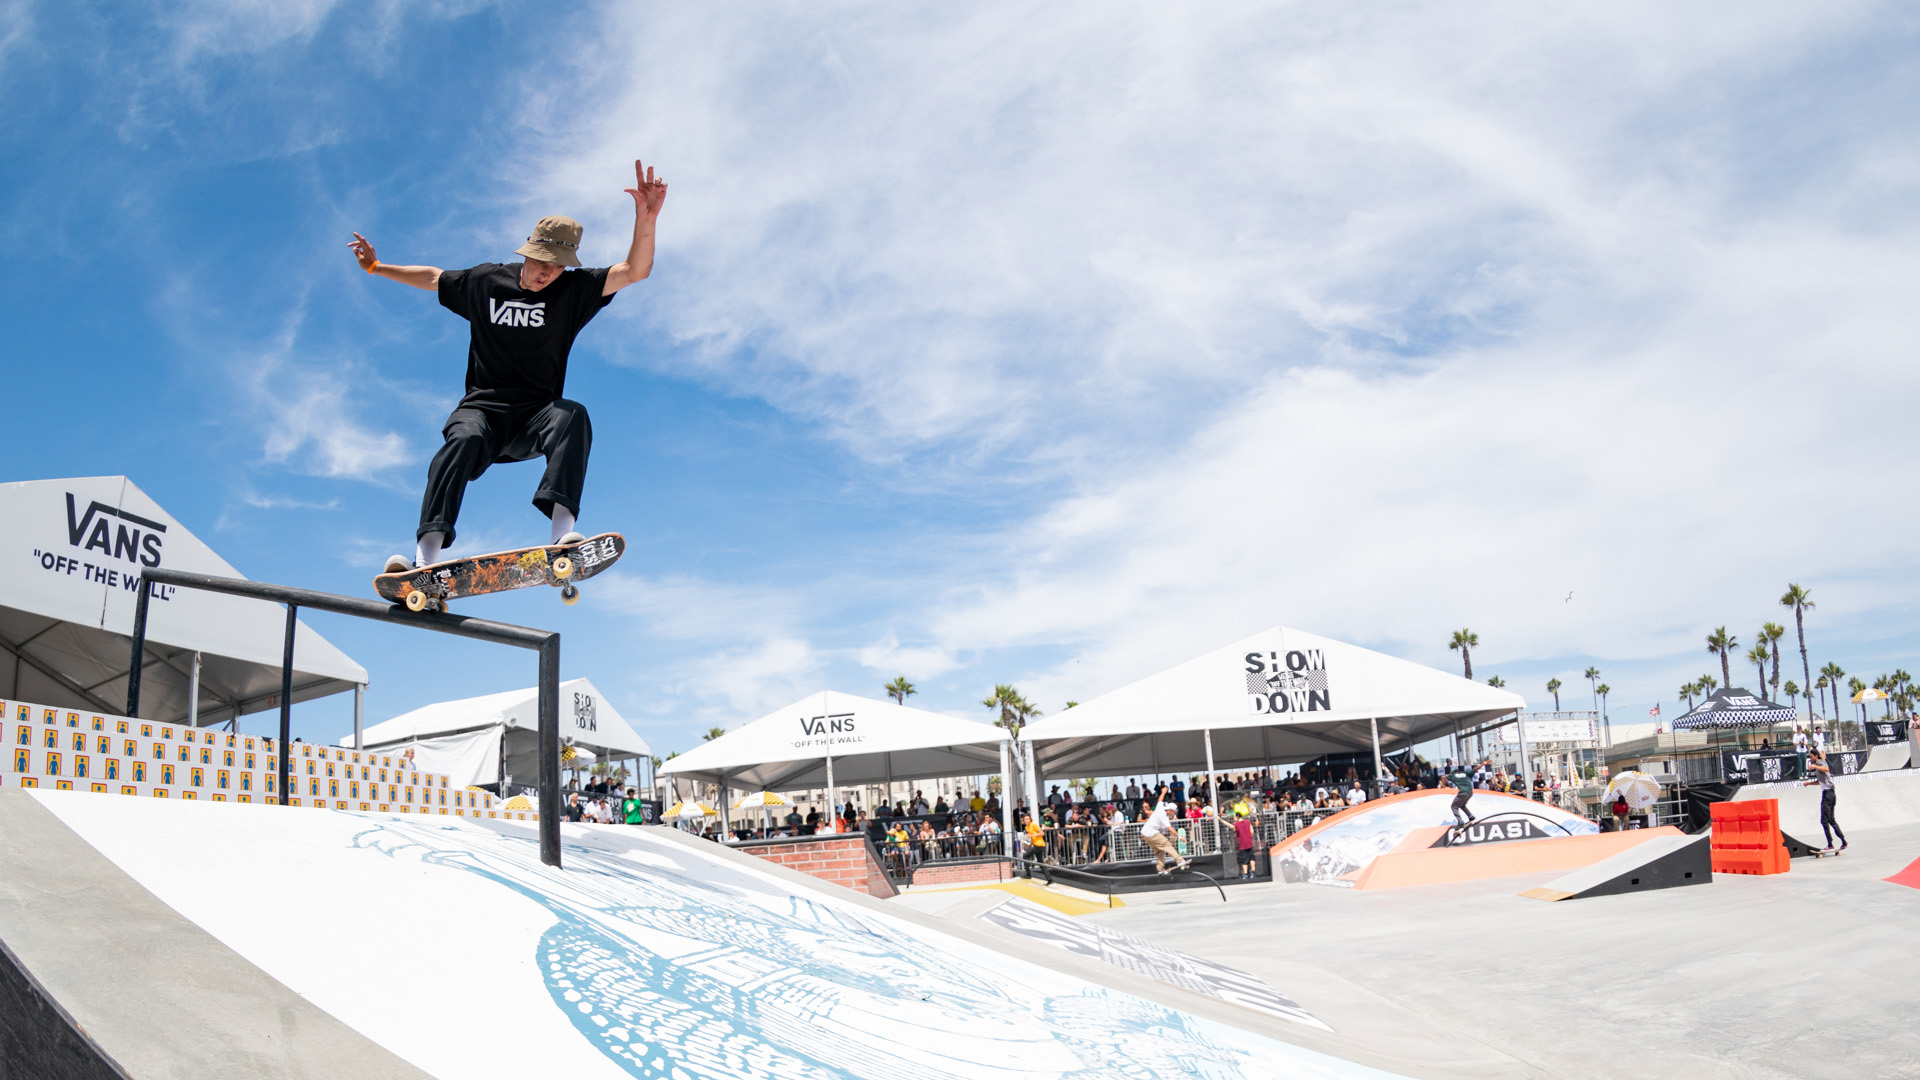 One of the competitors at the Vans Showdown men's competition.